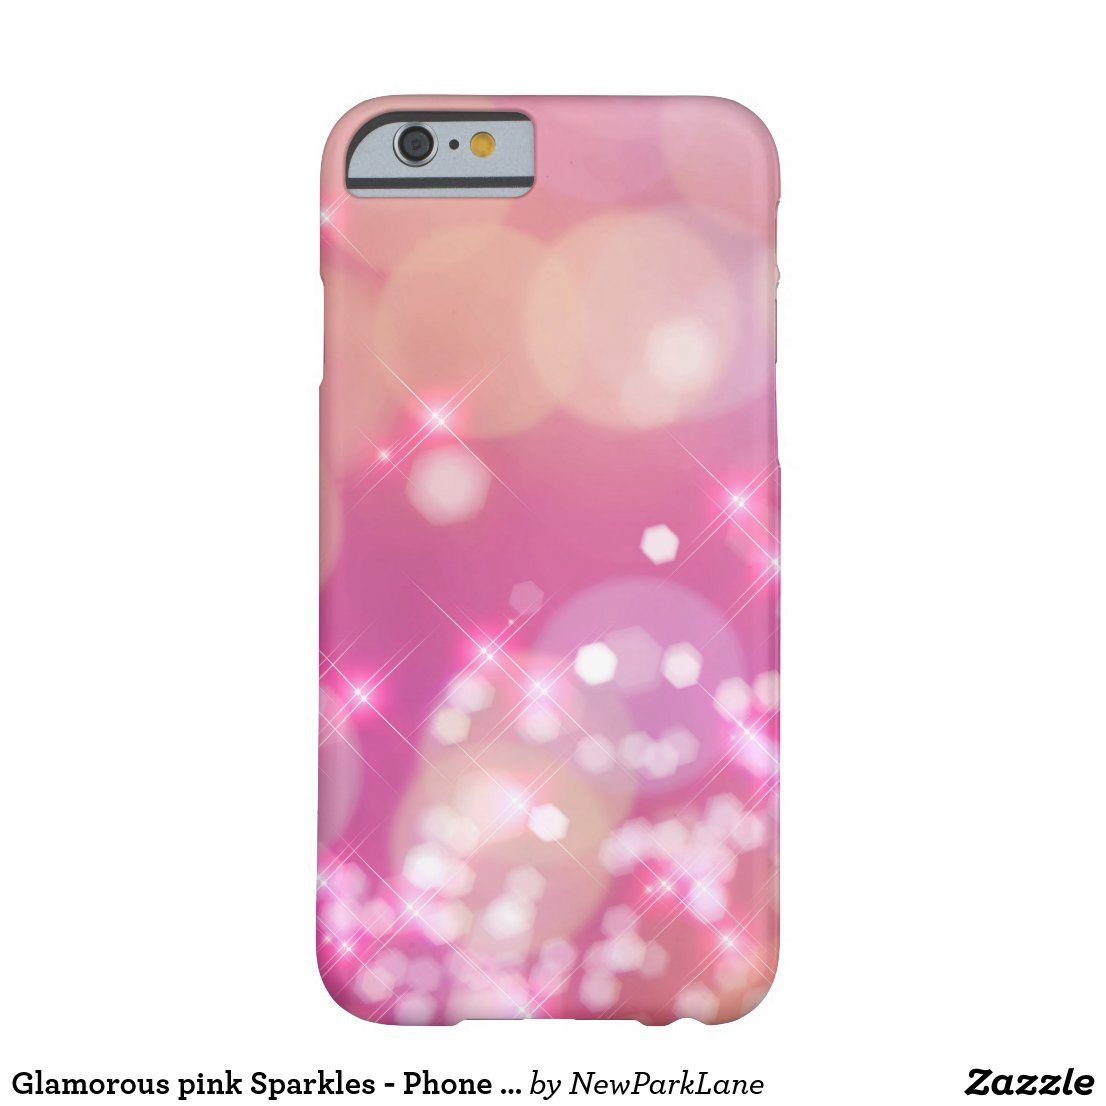 PINK SPARKLES - Phone Case